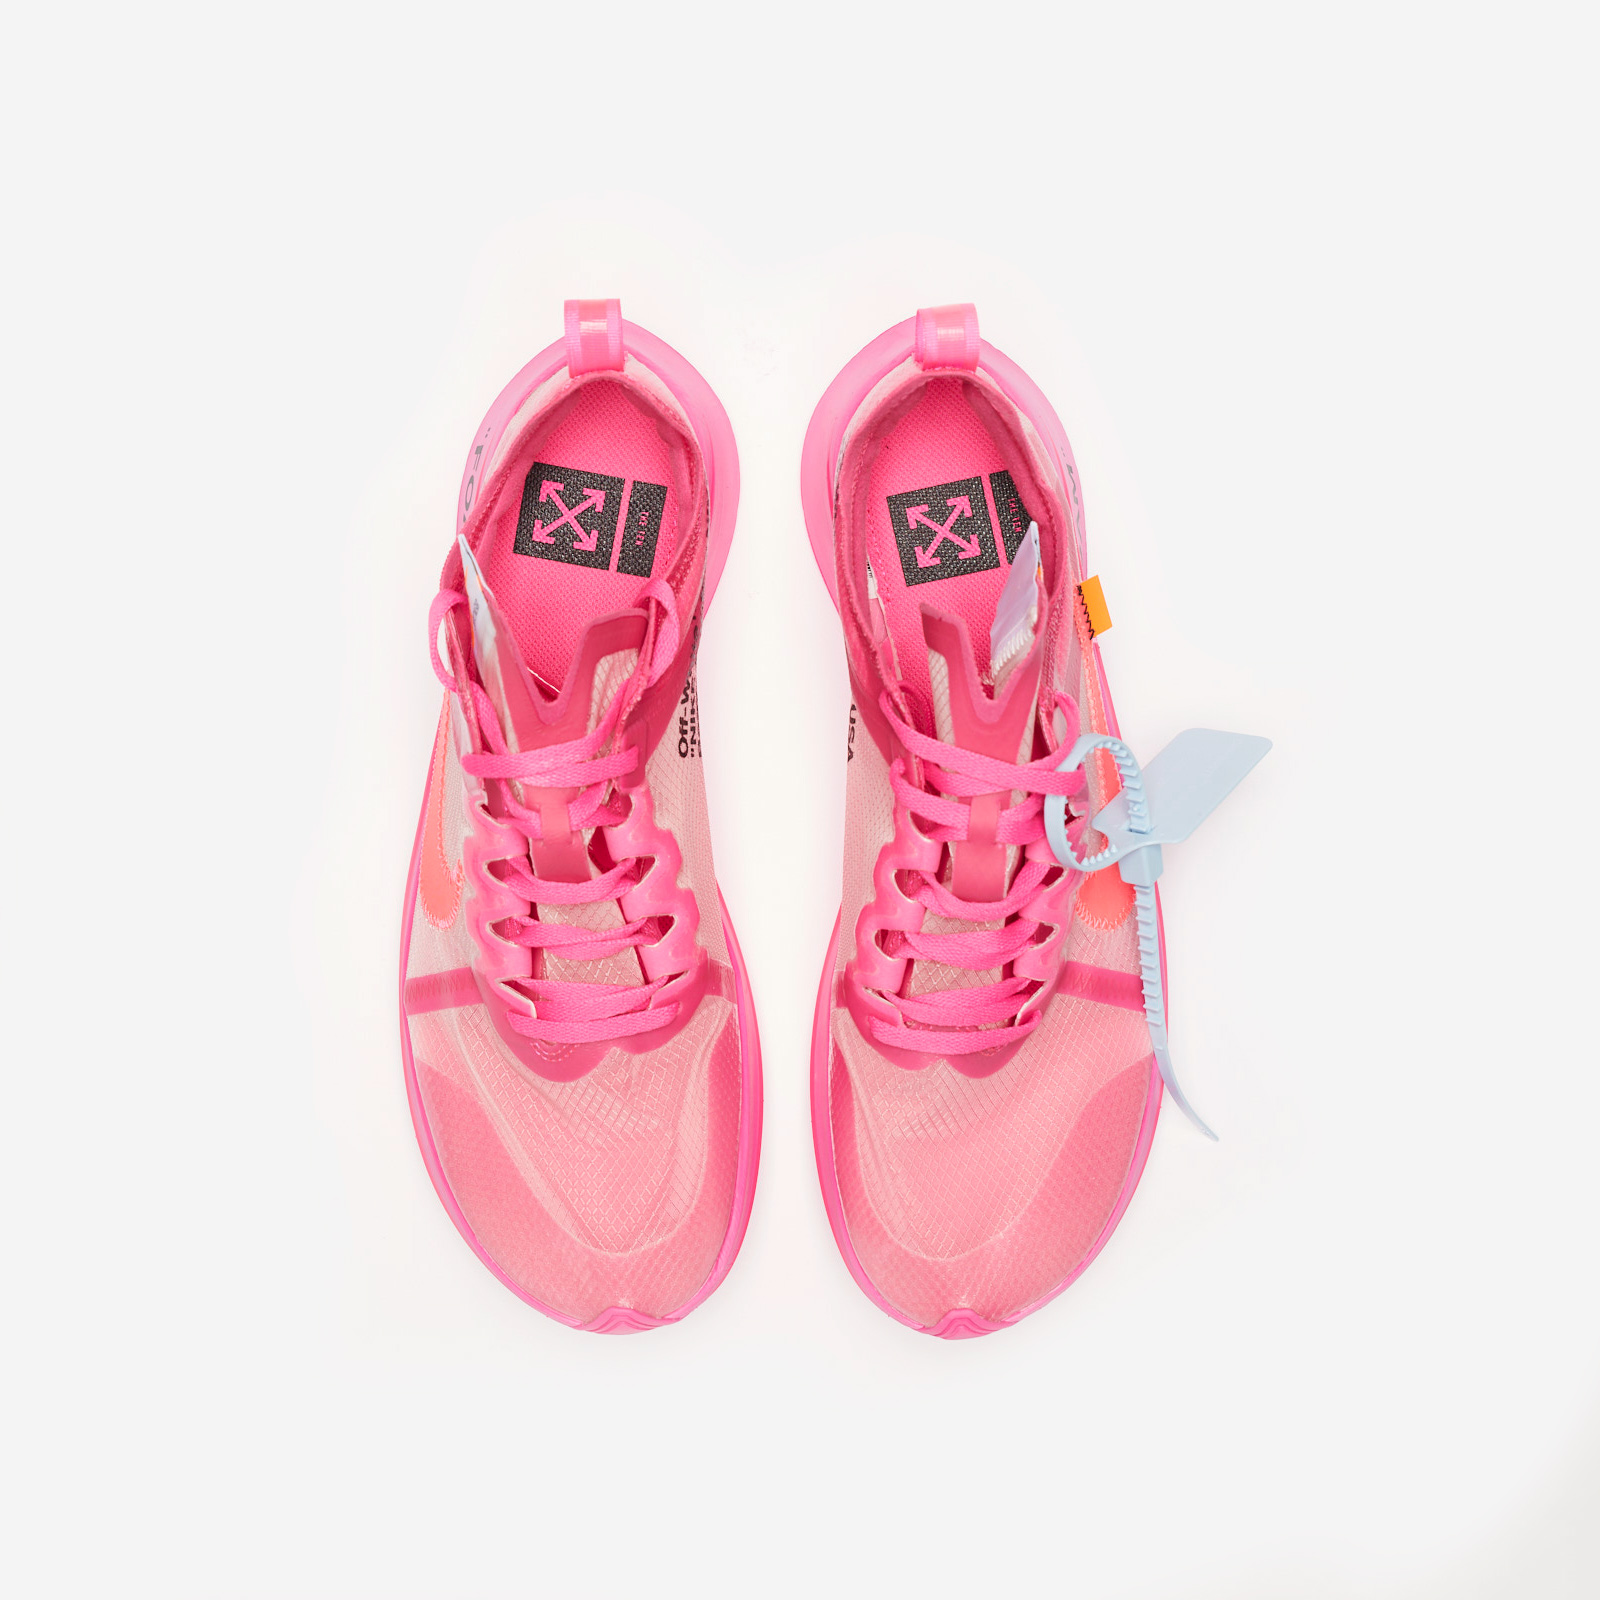 Off White Nike Zoom Fly Pink AJ4588 600 Release Date SBD